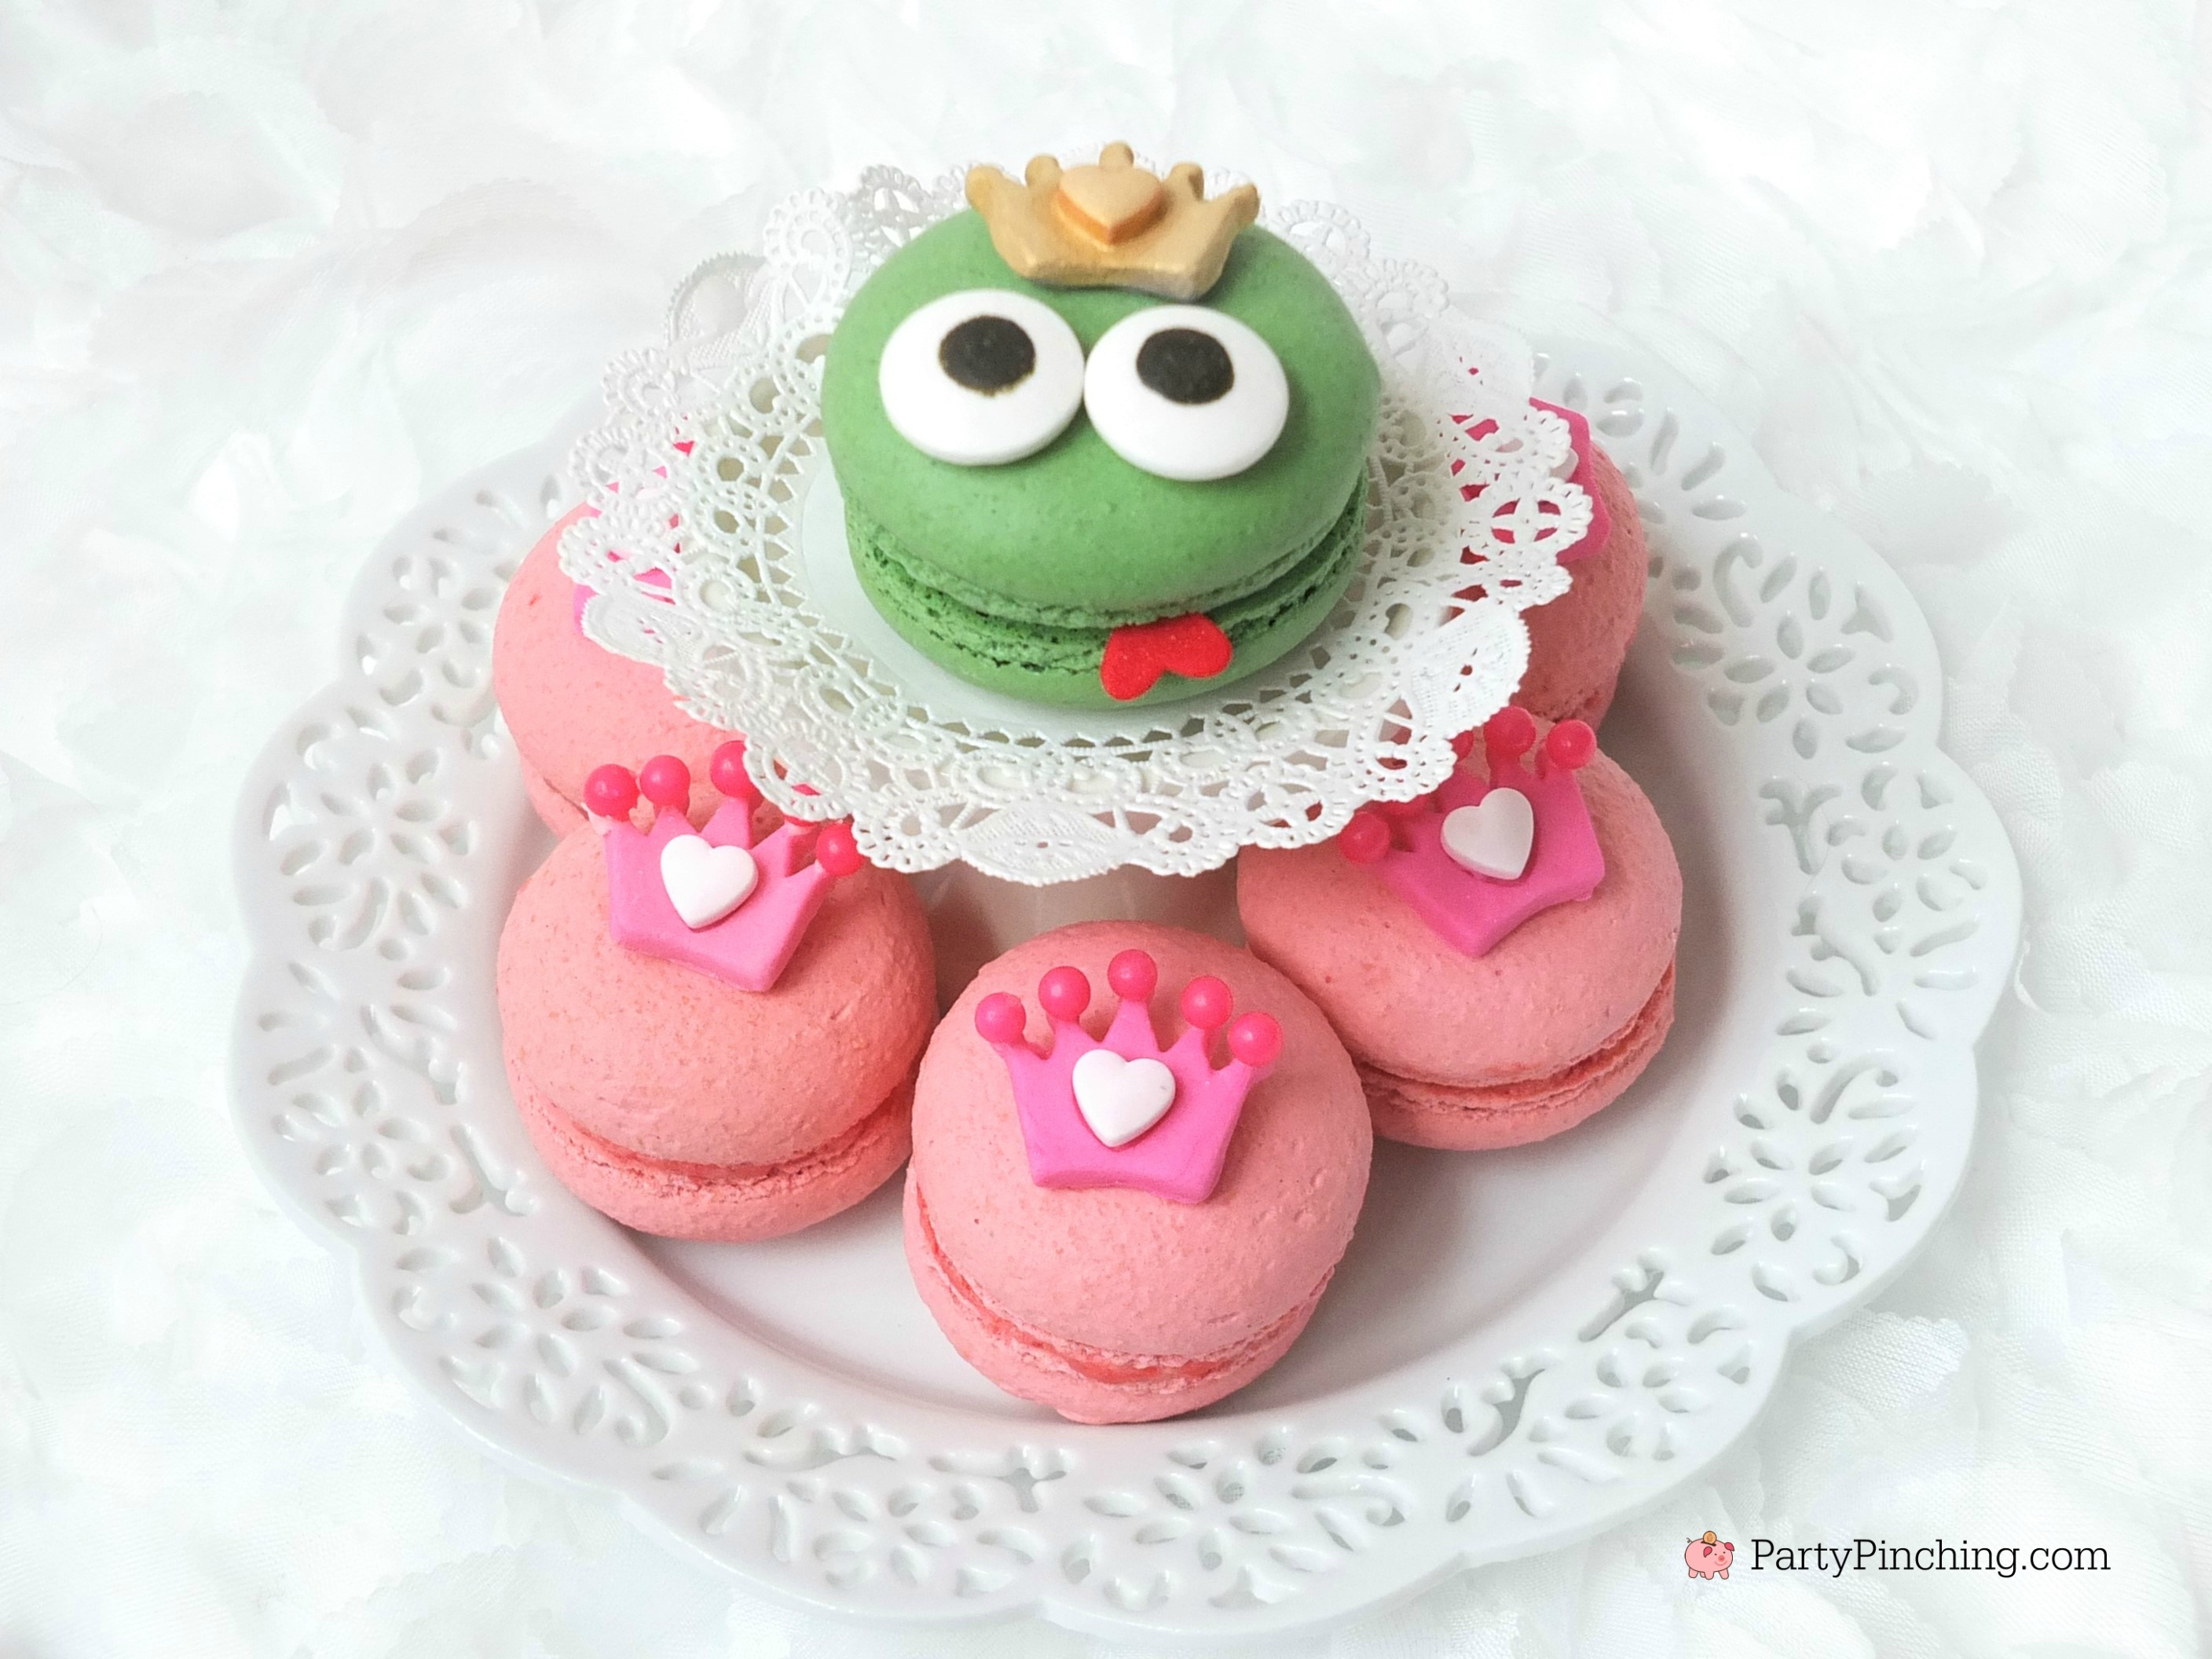 princess and frog macarons, cute macarons, princess party food ideas, cute desserts for pink girl party, princess party ideas, adorable dessert ideas, sweet treats, cute food, fun food for kids, cute decorated cookies